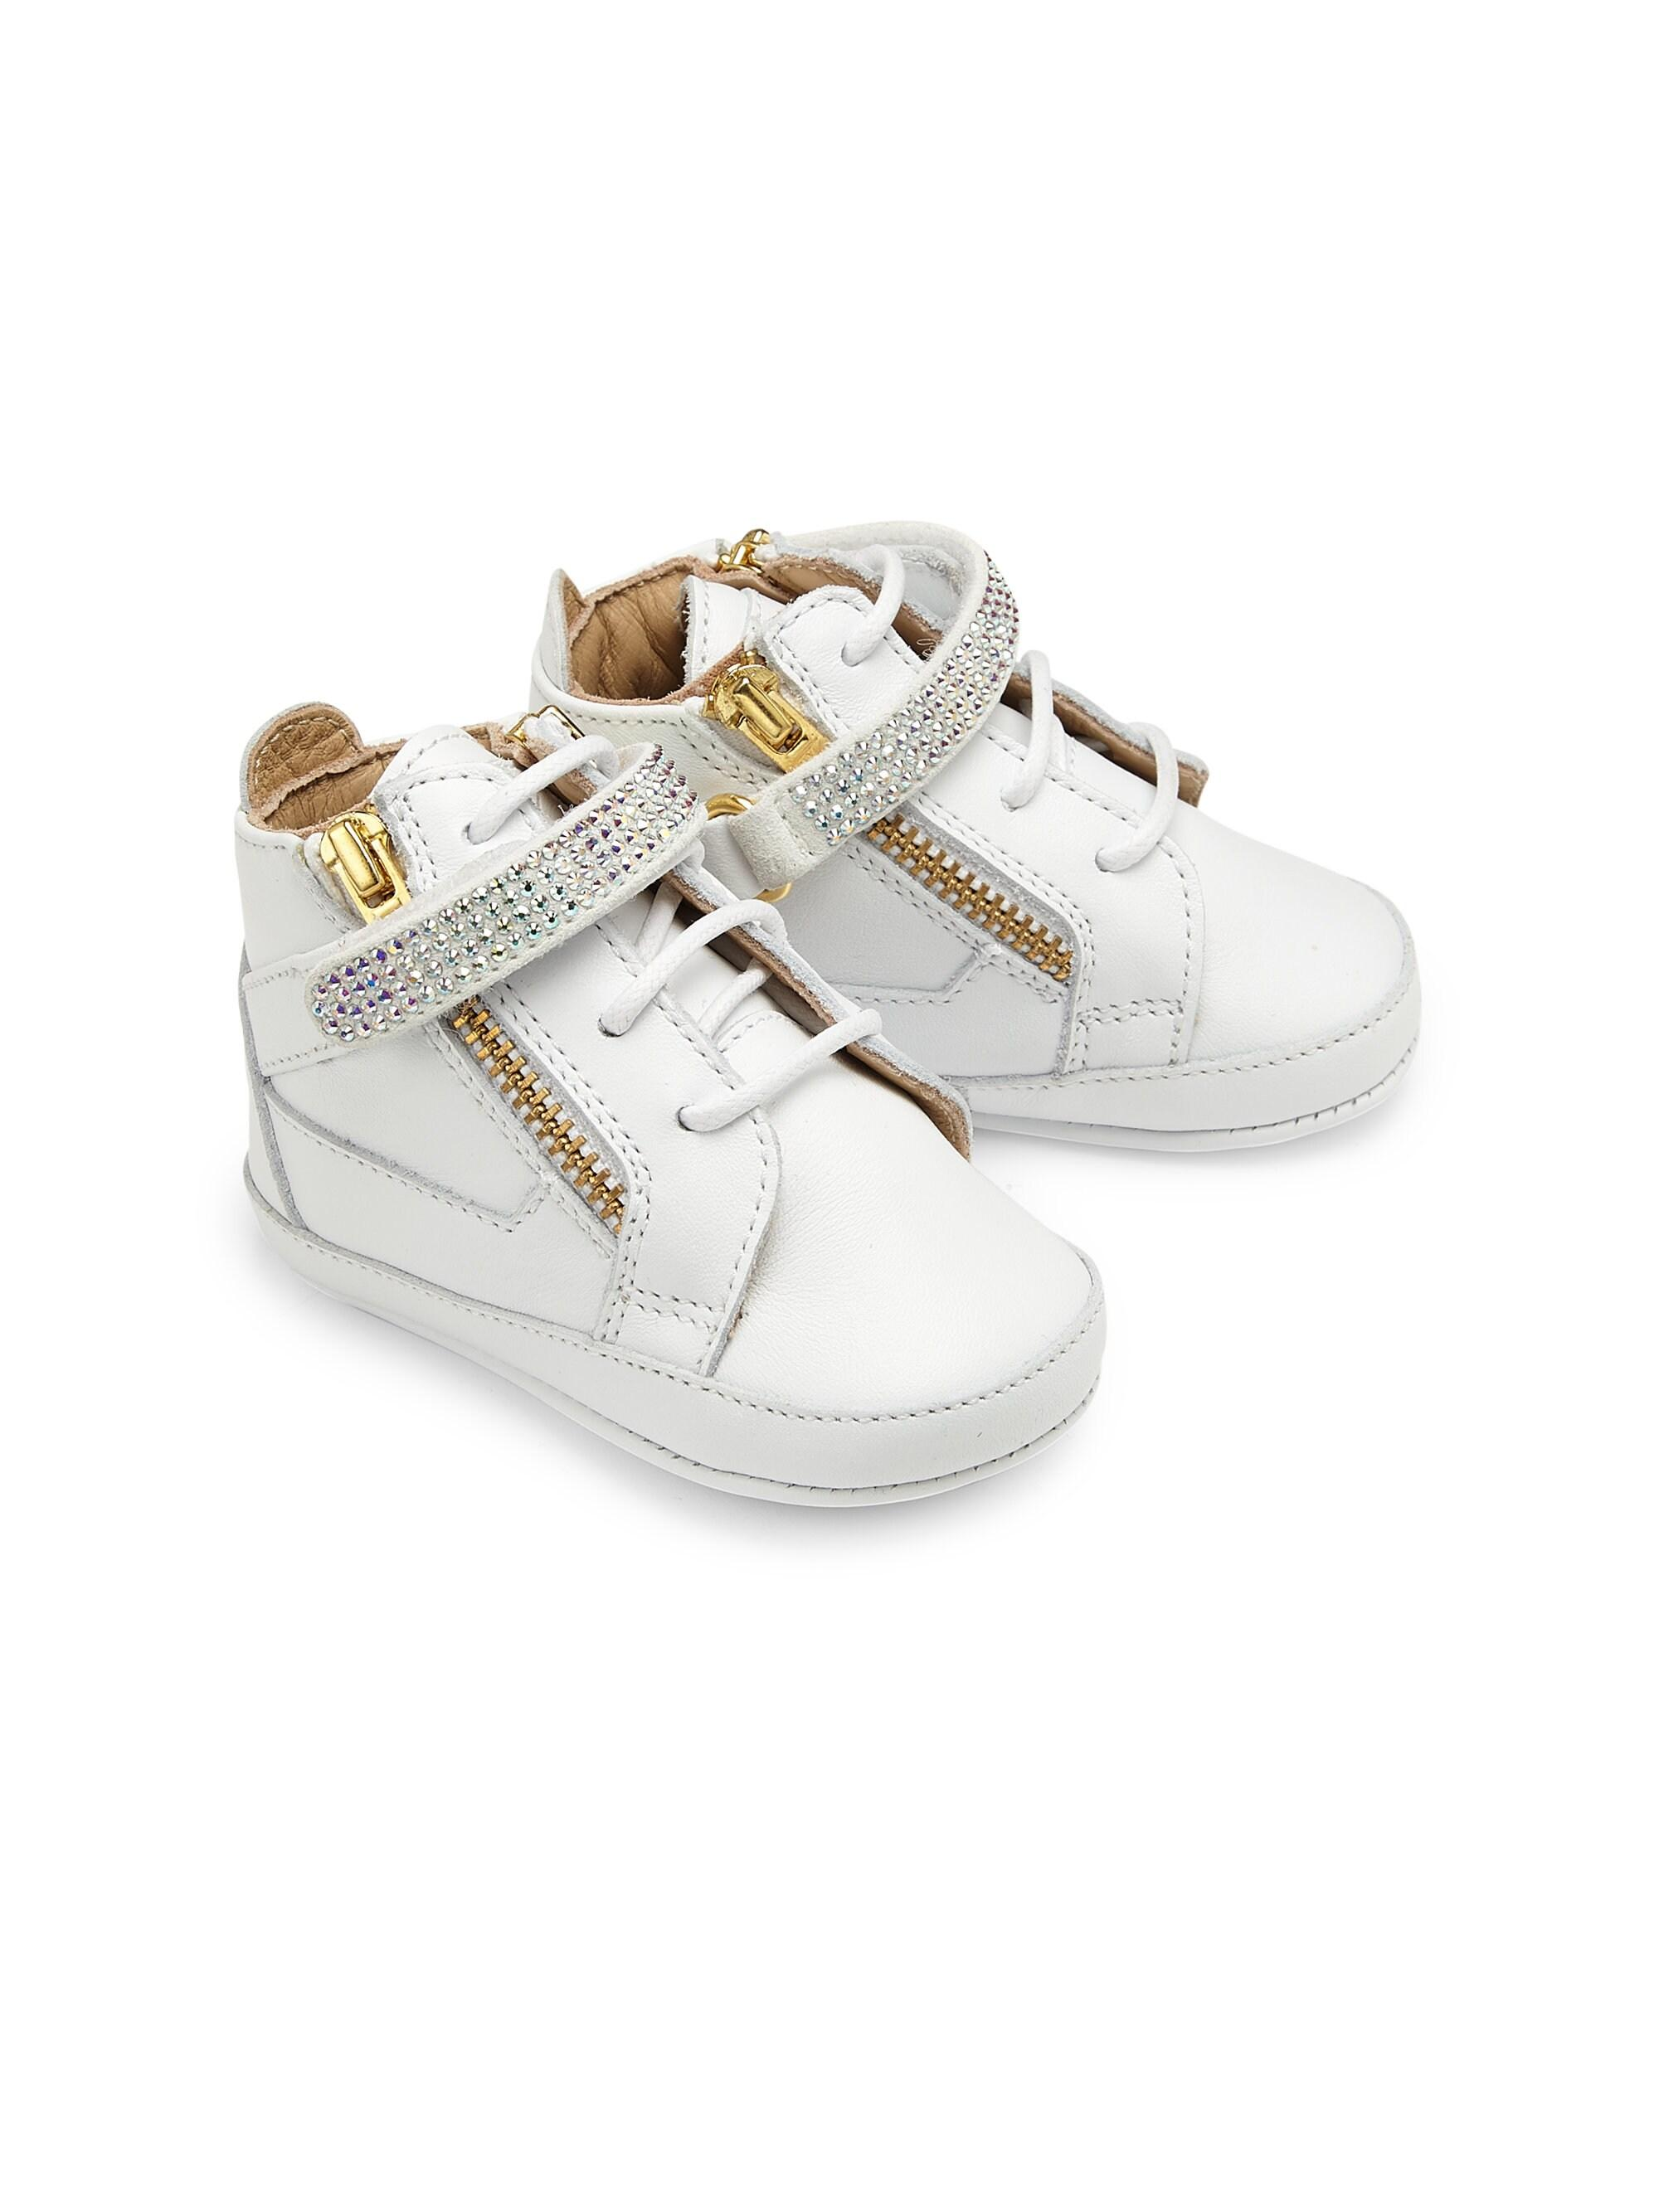 a2a4730a286de Tap to visit site. Giuseppe Zanotti - Baby's Swarovski Crystal Embellished  Leather Crib Sneakers ...